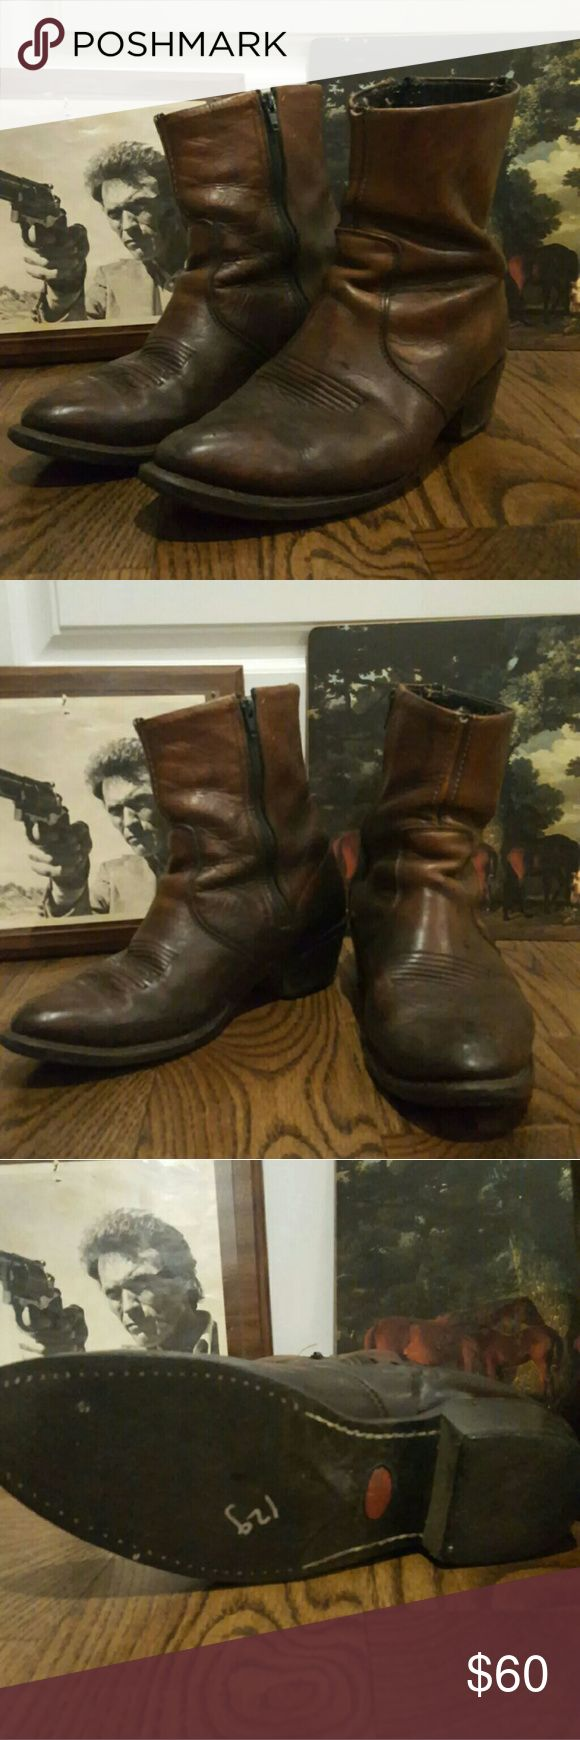 Vintage Leather Men Durango Cowboy Boots Beautiful Rustic Durango Leather Boots in GREAT shape! They seem to be a Mens 10.5. I am going to have to measure but I am pretty sure they are tho they are not marked. Soles are in really good condition.  The inside of them are pretty worn but could be cleaned easily. Durango Shoes Cowboy & Western Boots